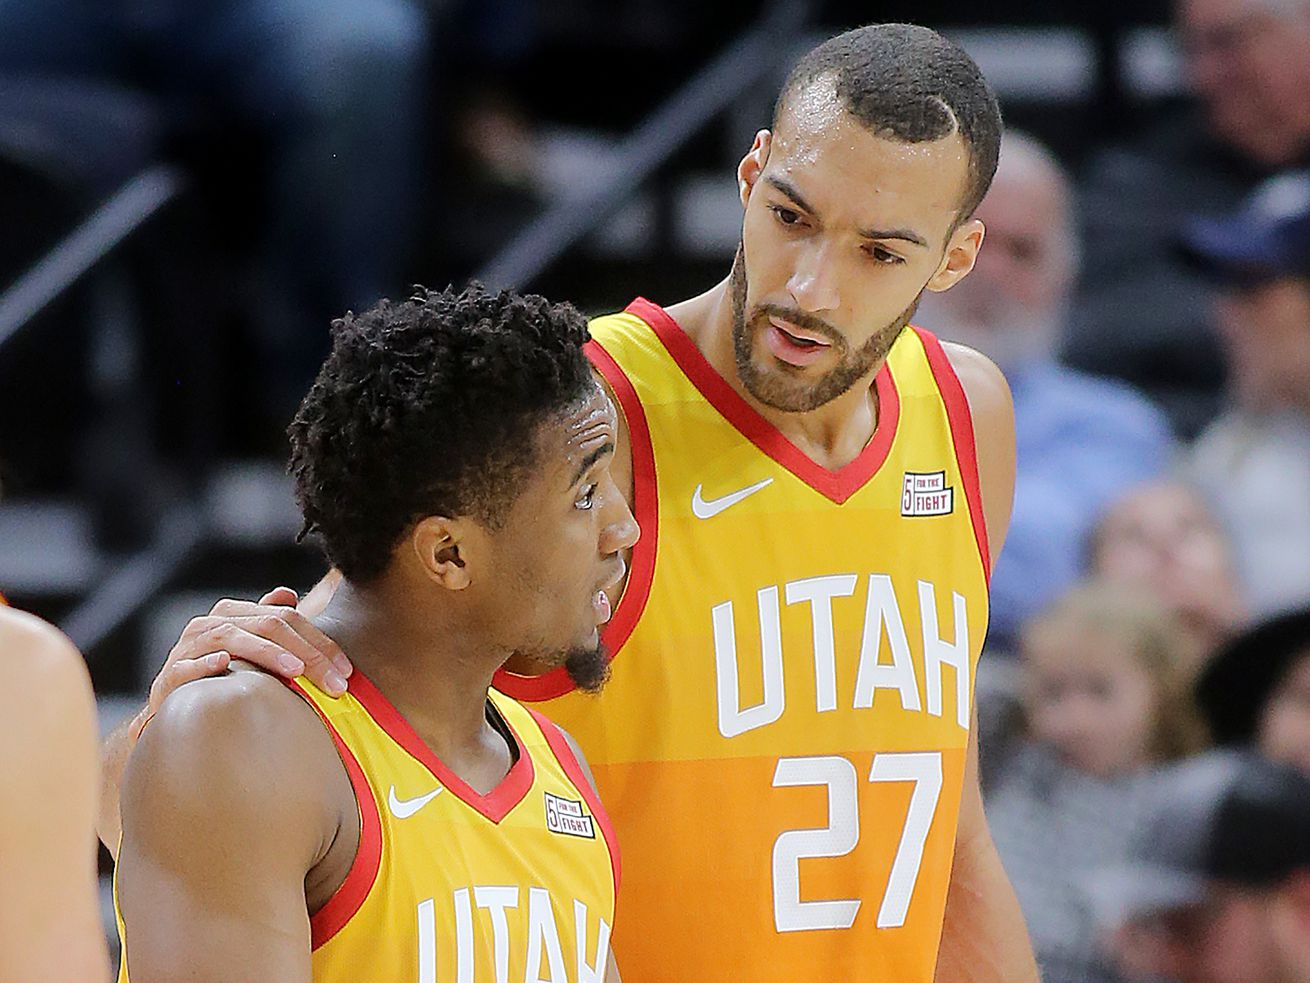 Utah Jazz center Rudy Gobert, right, talks to teammate Donovan Mitchell as the Utah Jazz and the Golden State Warriors play at Vivint Smart Home Arena in Salt Lake City on Wednesday, Dec. 19, 2018.